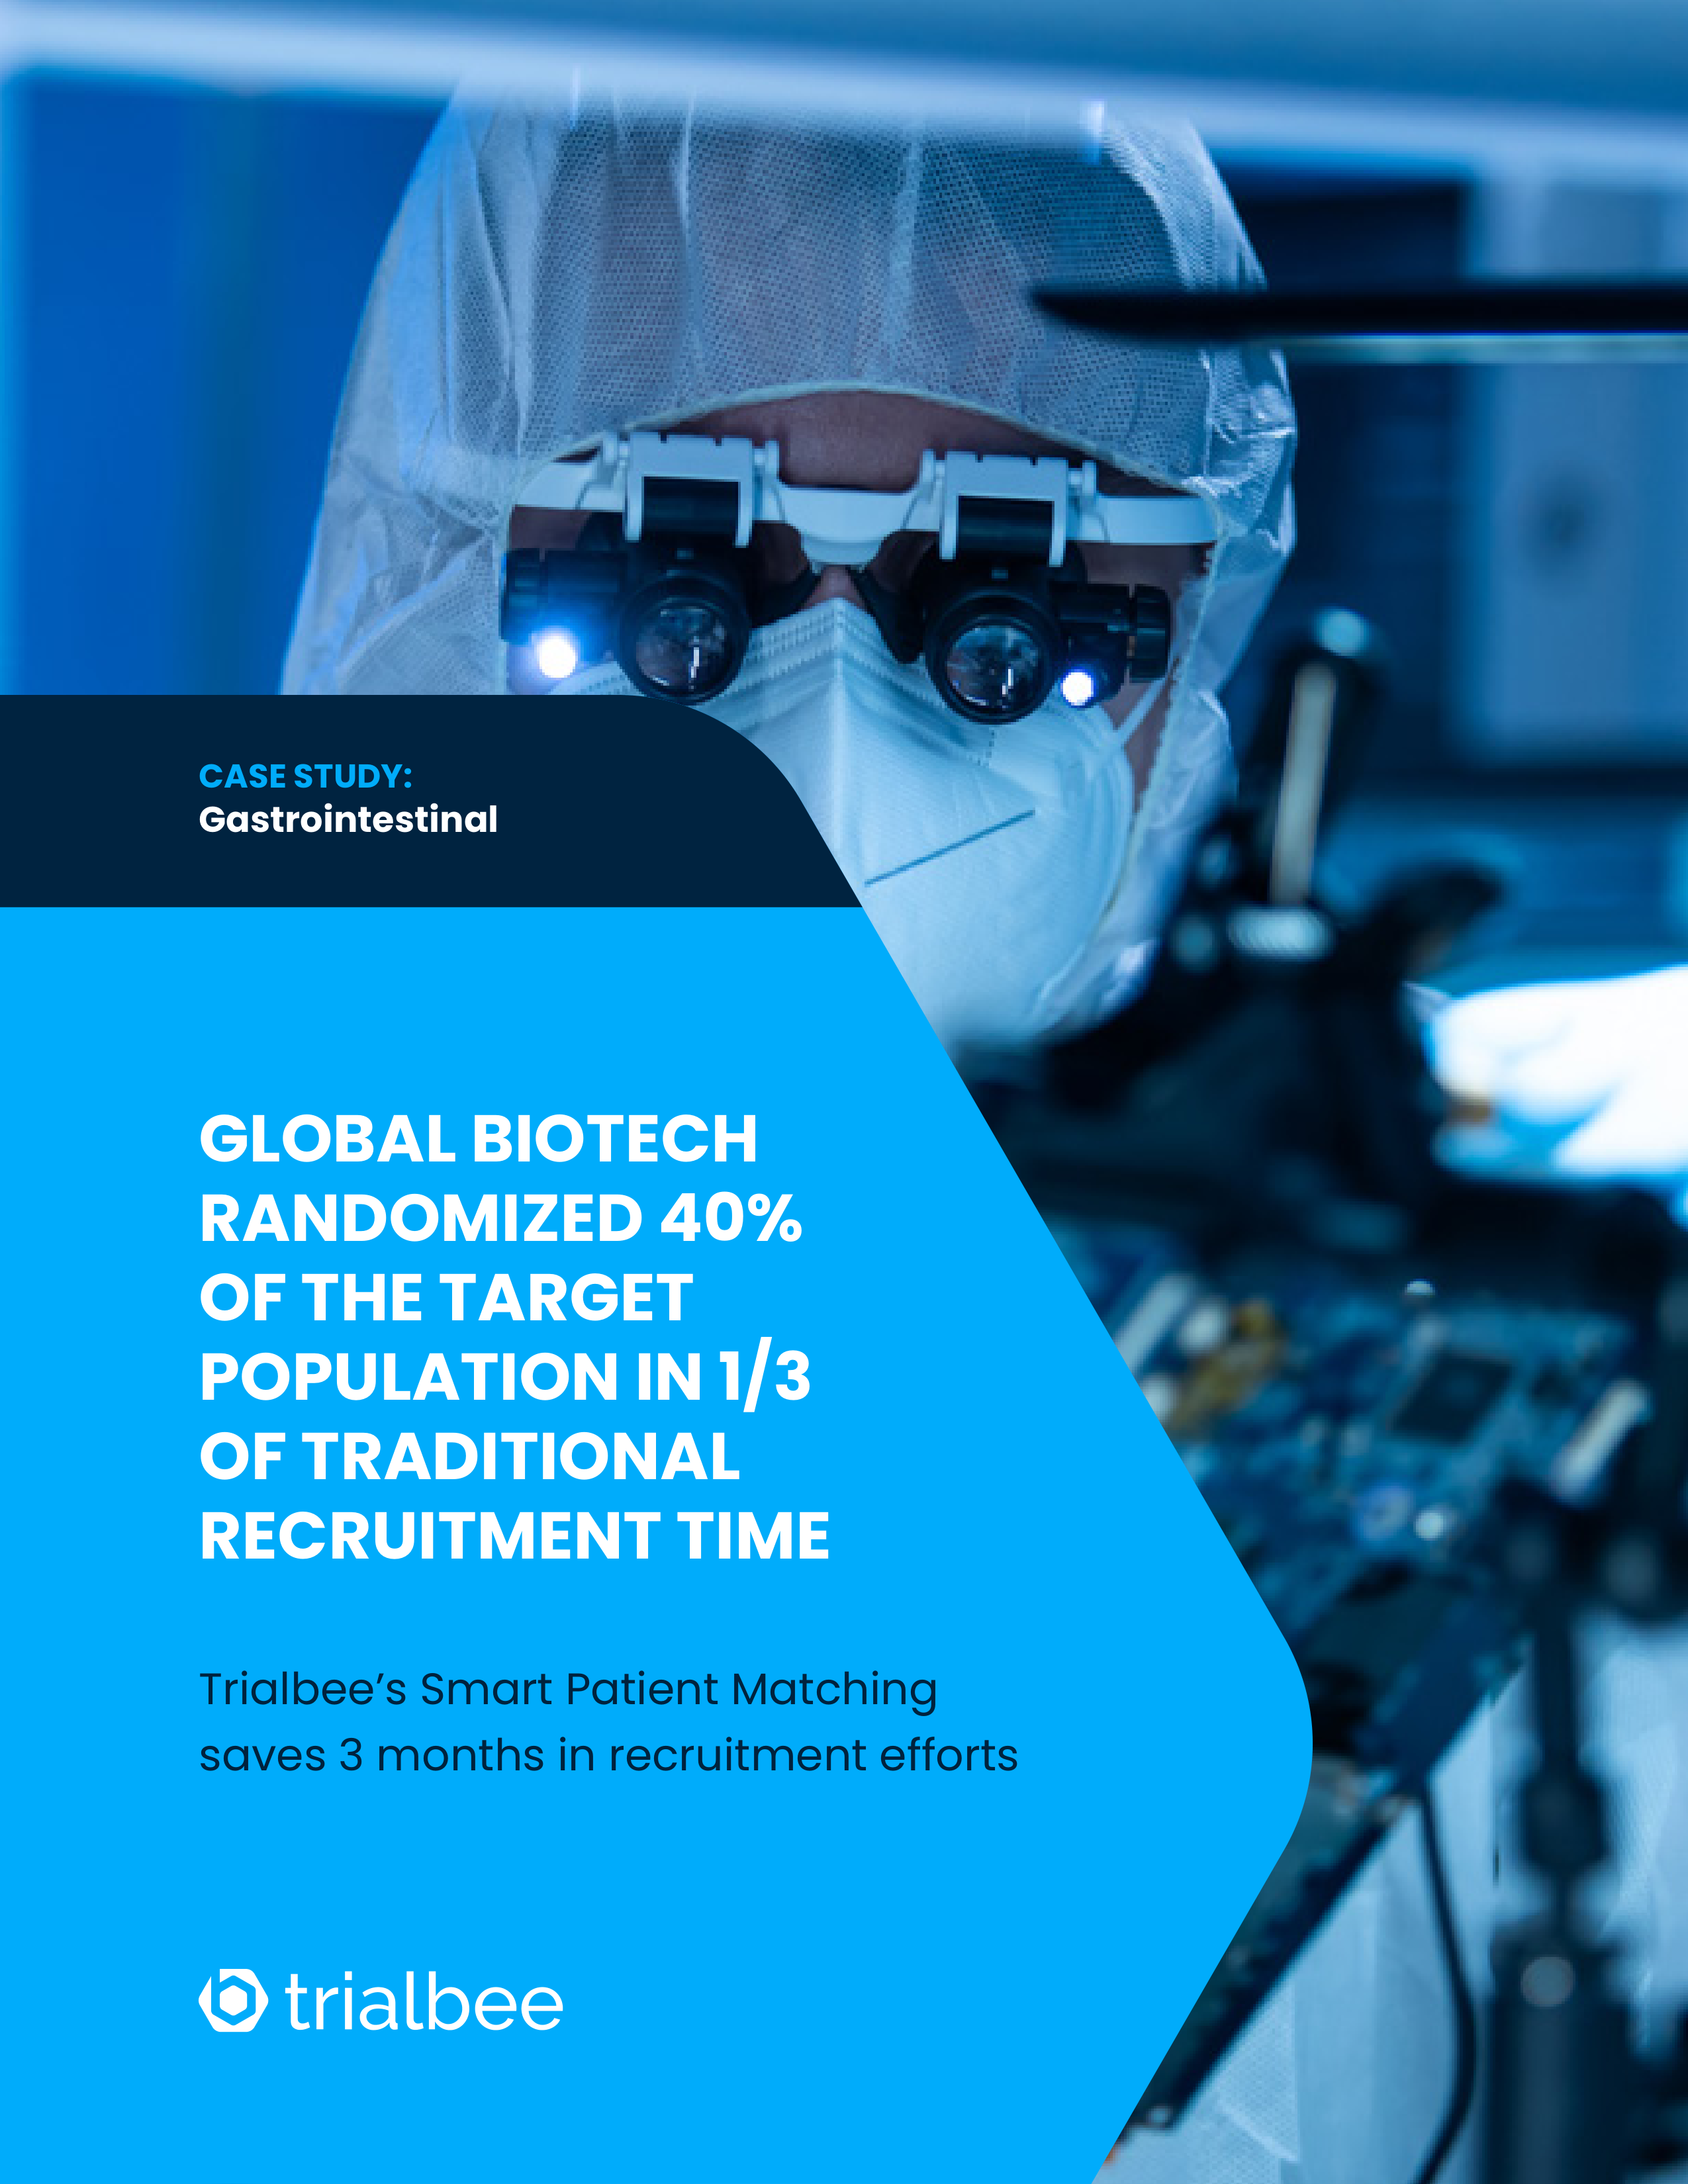 Global Biotech Randomized 40% of the Target Population in 1/3 of Traditional Recruitment Time